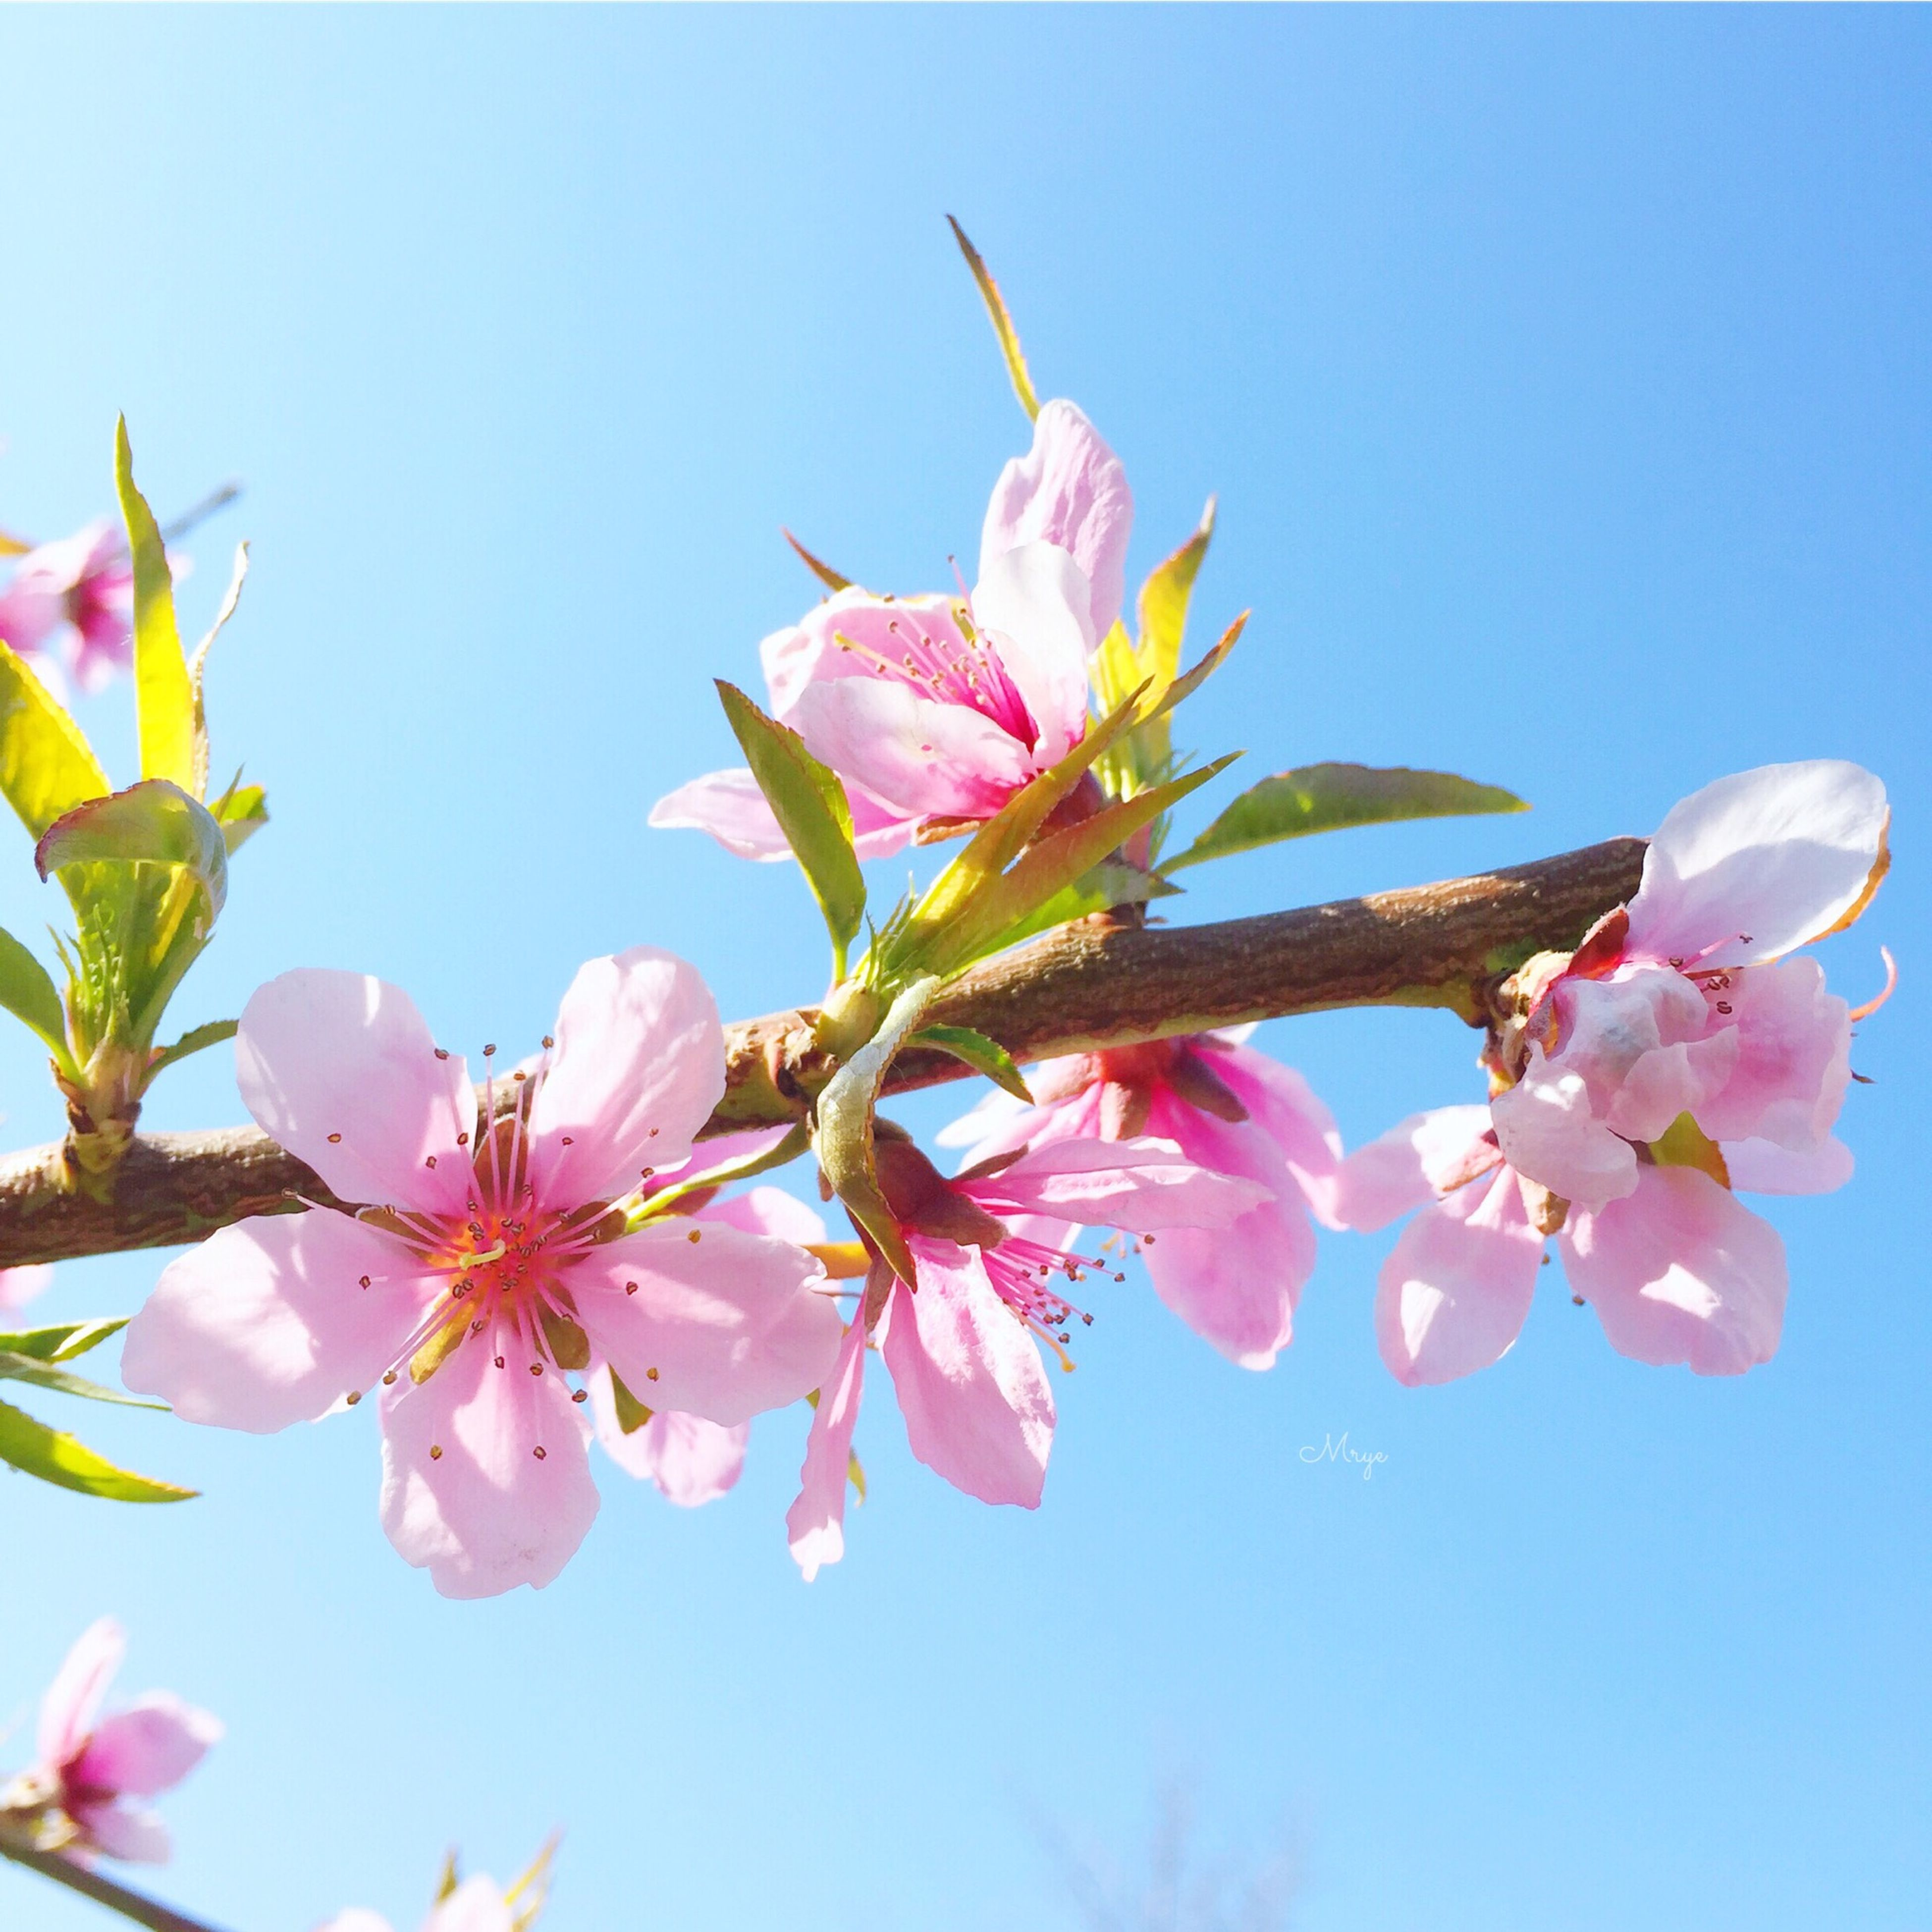 flower, freshness, fragility, growth, pink color, low angle view, clear sky, petal, beauty in nature, branch, nature, blossom, blooming, tree, cherry blossom, in bloom, flower head, cherry tree, close-up, springtime